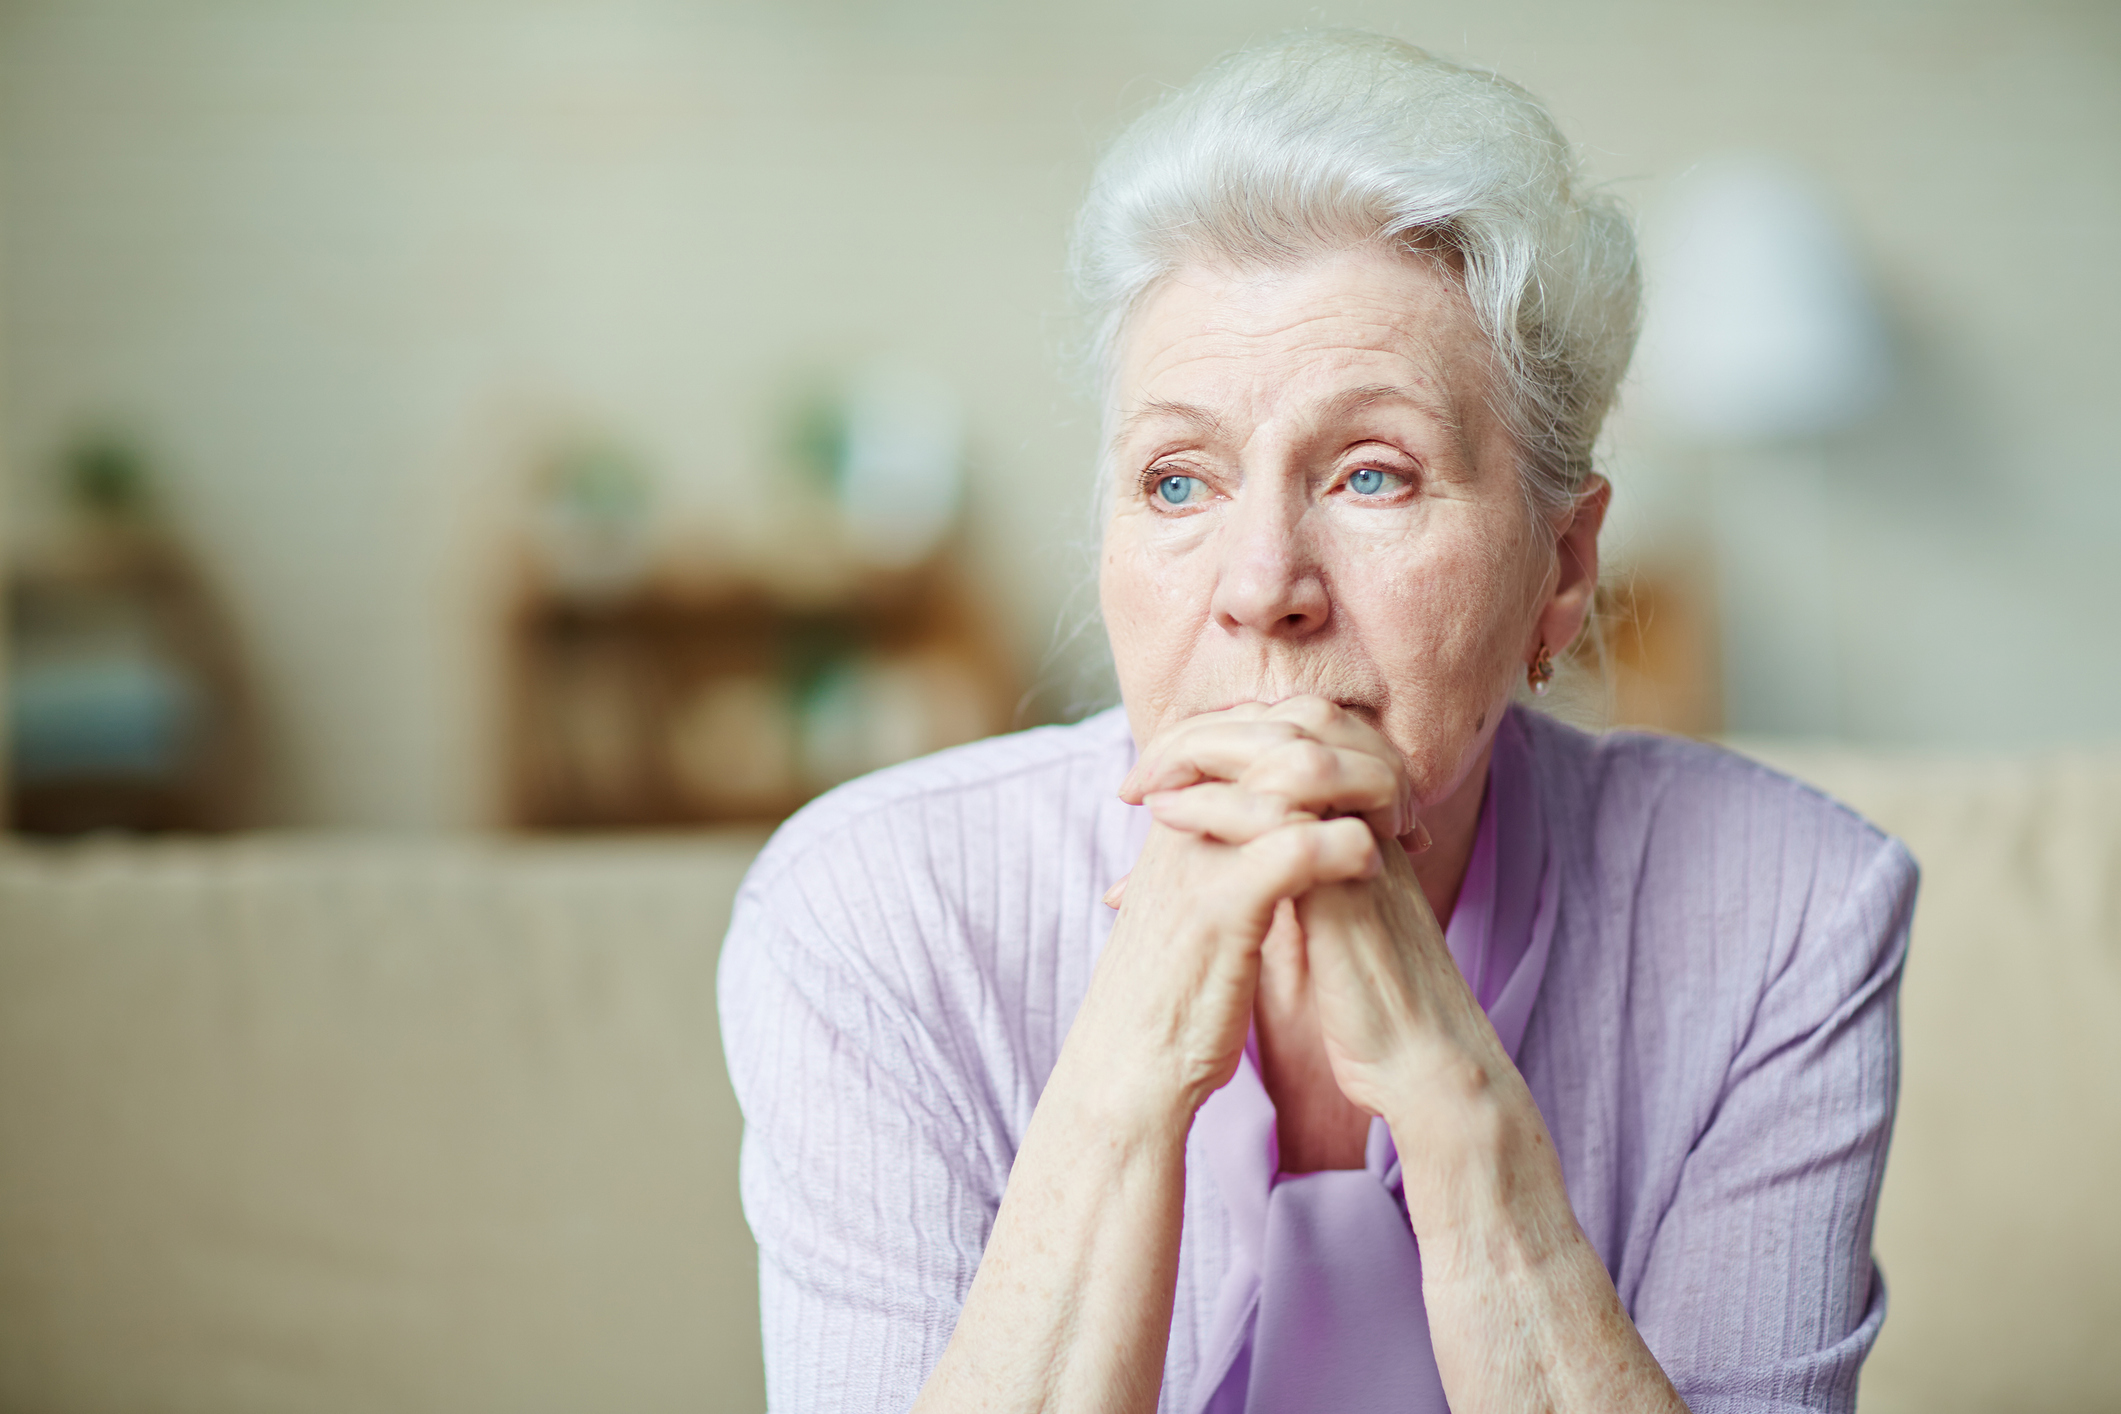 An older woman looking depressed after suffering elder abuse.